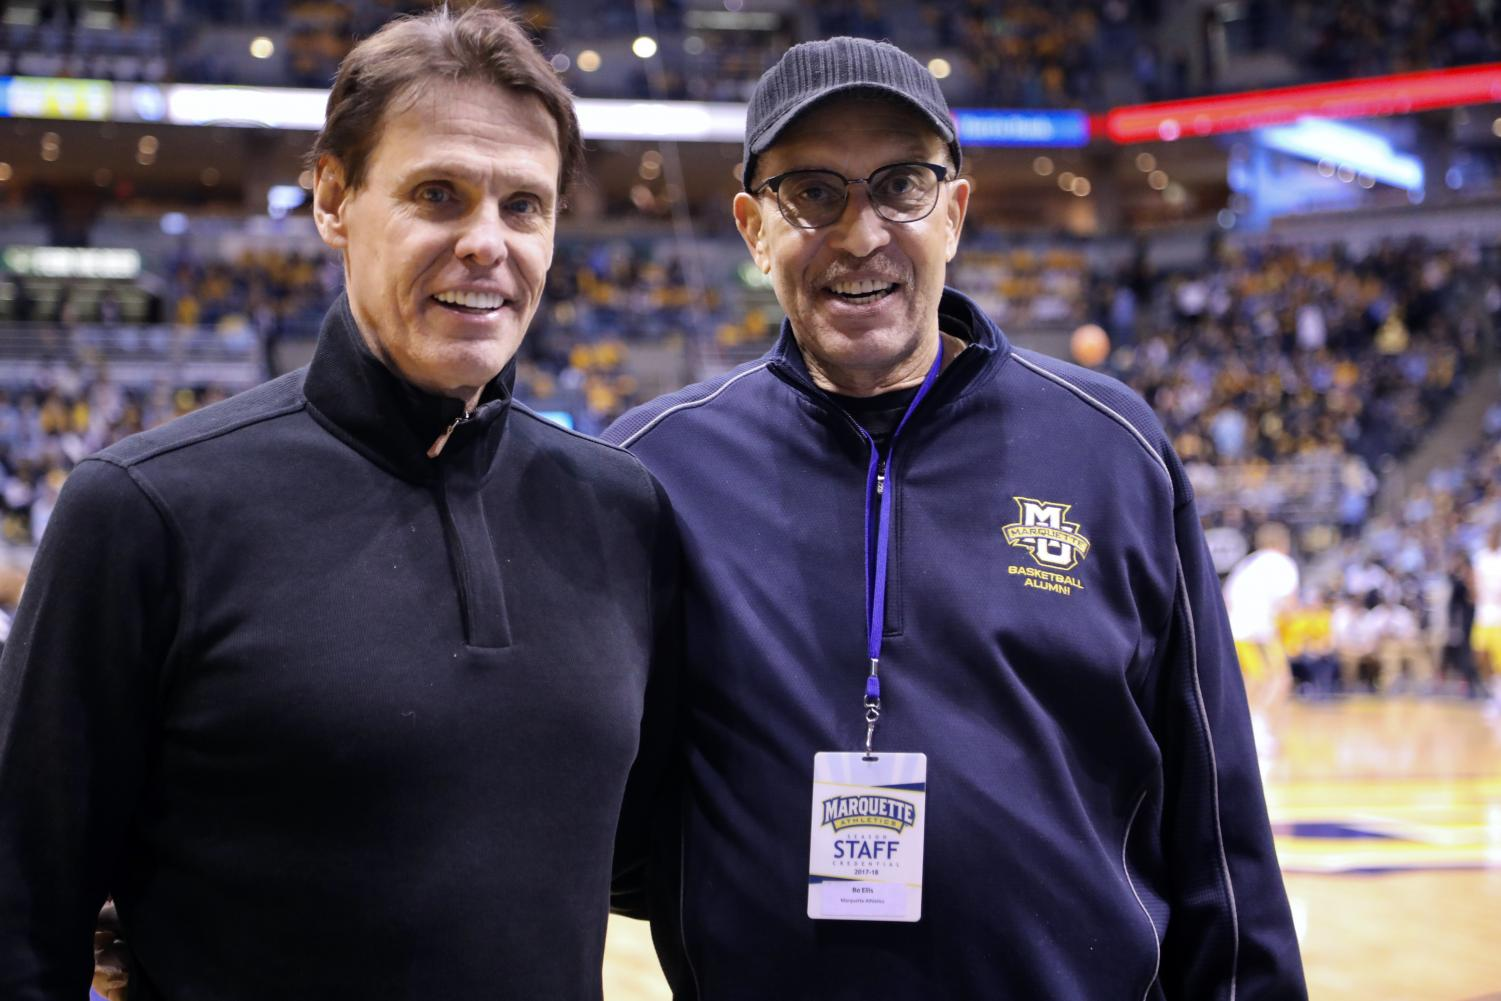 Jim Dudley (left) and Bo Ellis, two players on Marquette's 1977 championship team, pose for a picture.